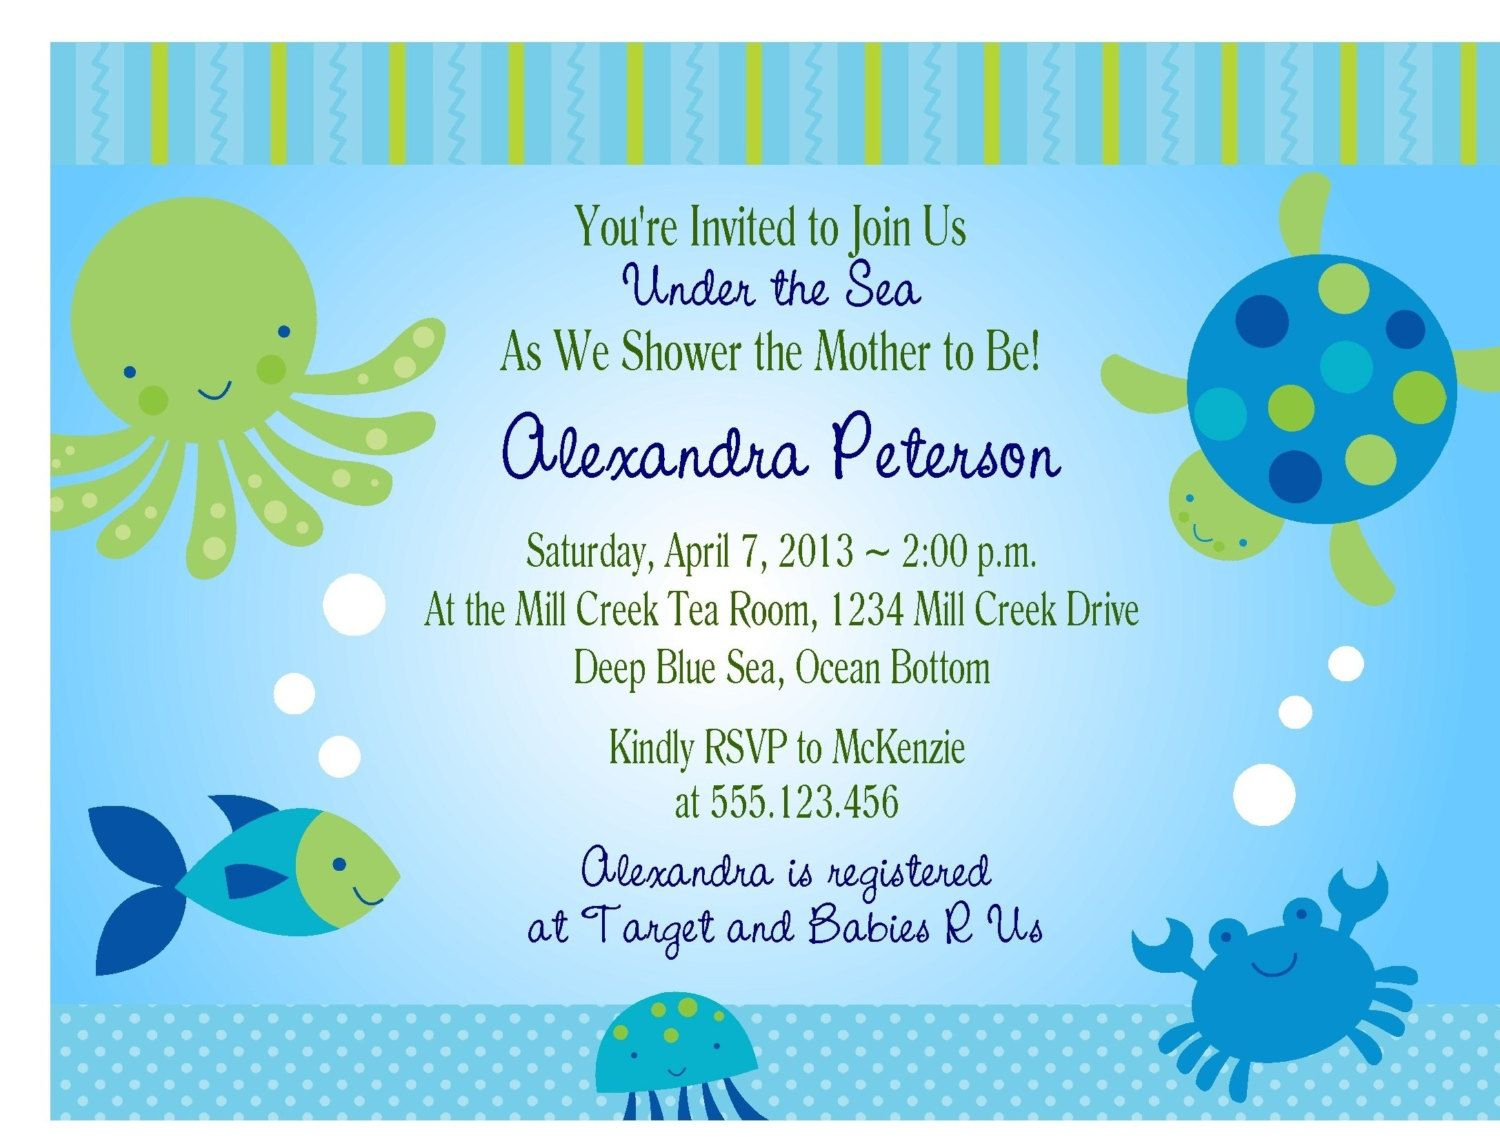 Under The Sea Baby Shower Invitations Free Templates | Invitations - Free Printable Turtle Baby Shower Invitations